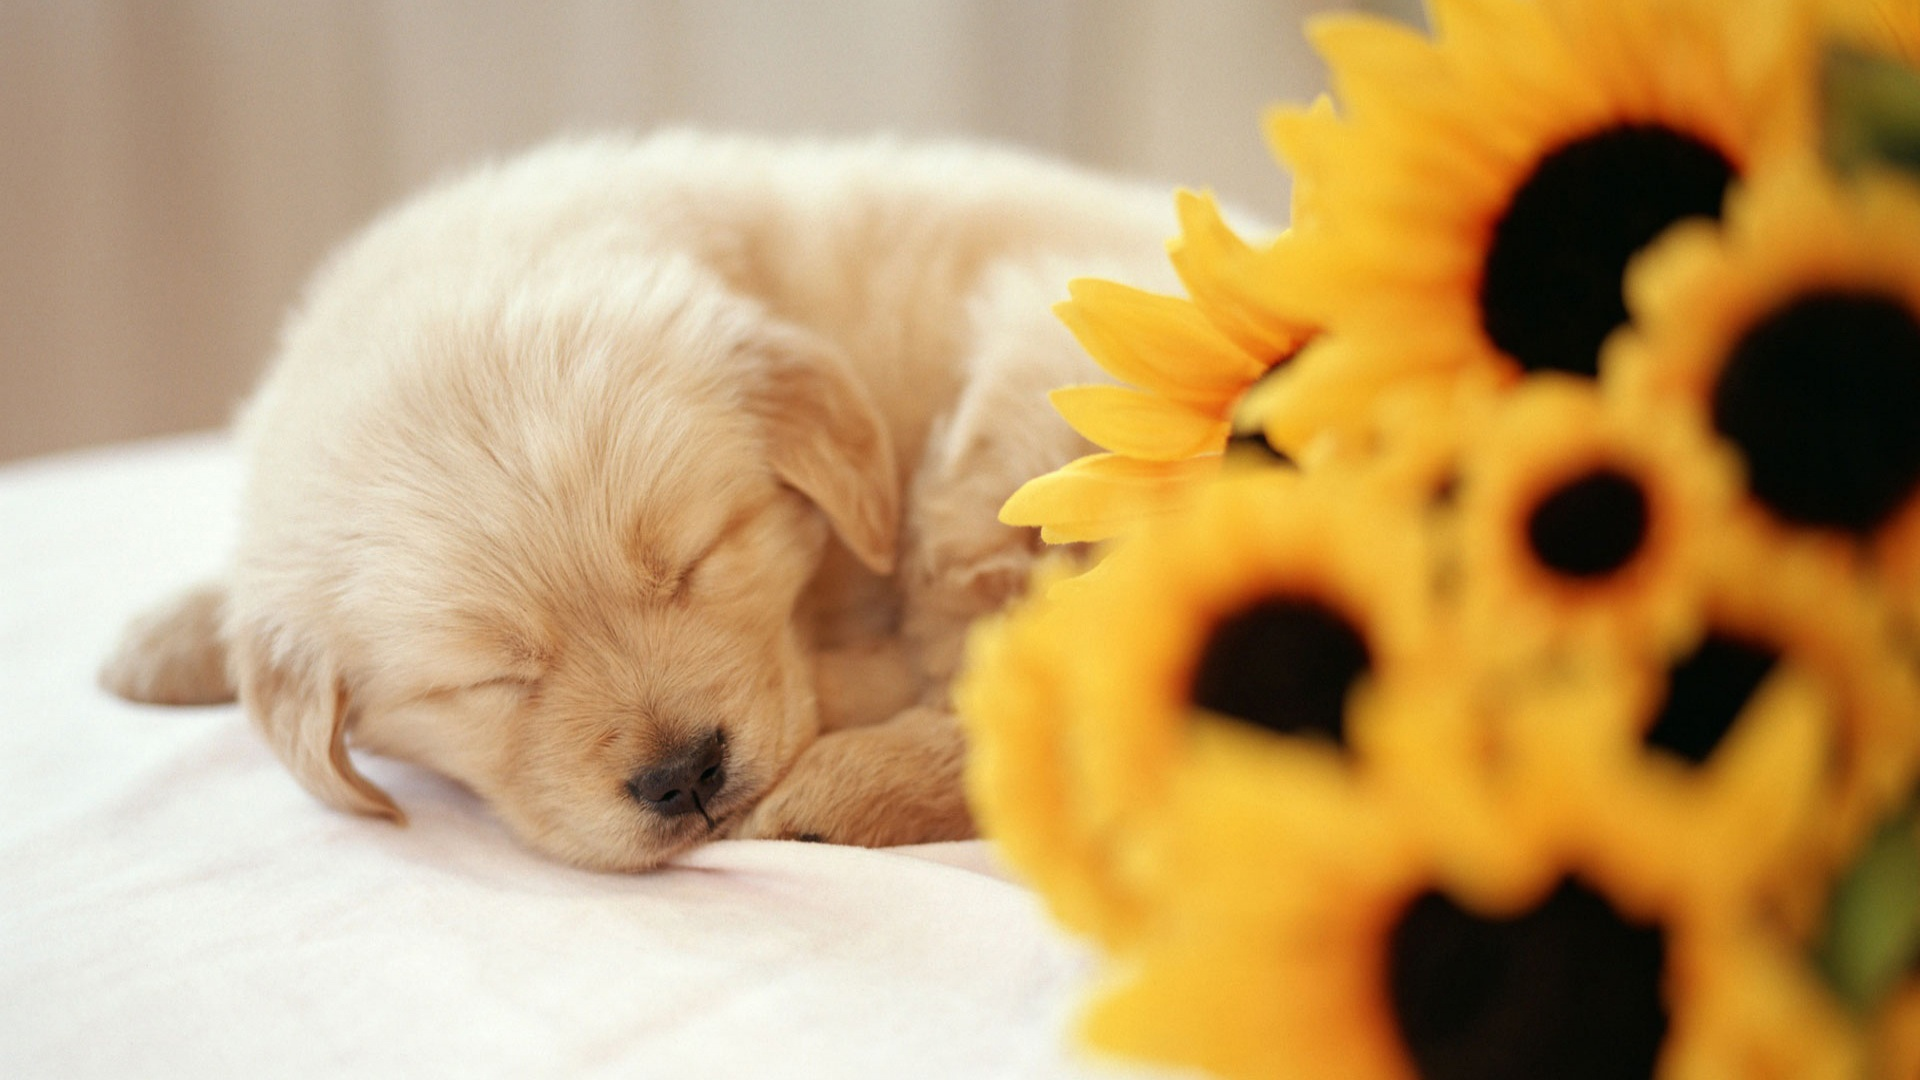 Wallpapers Of Puppies Backgrounds with puppies 1920x1080